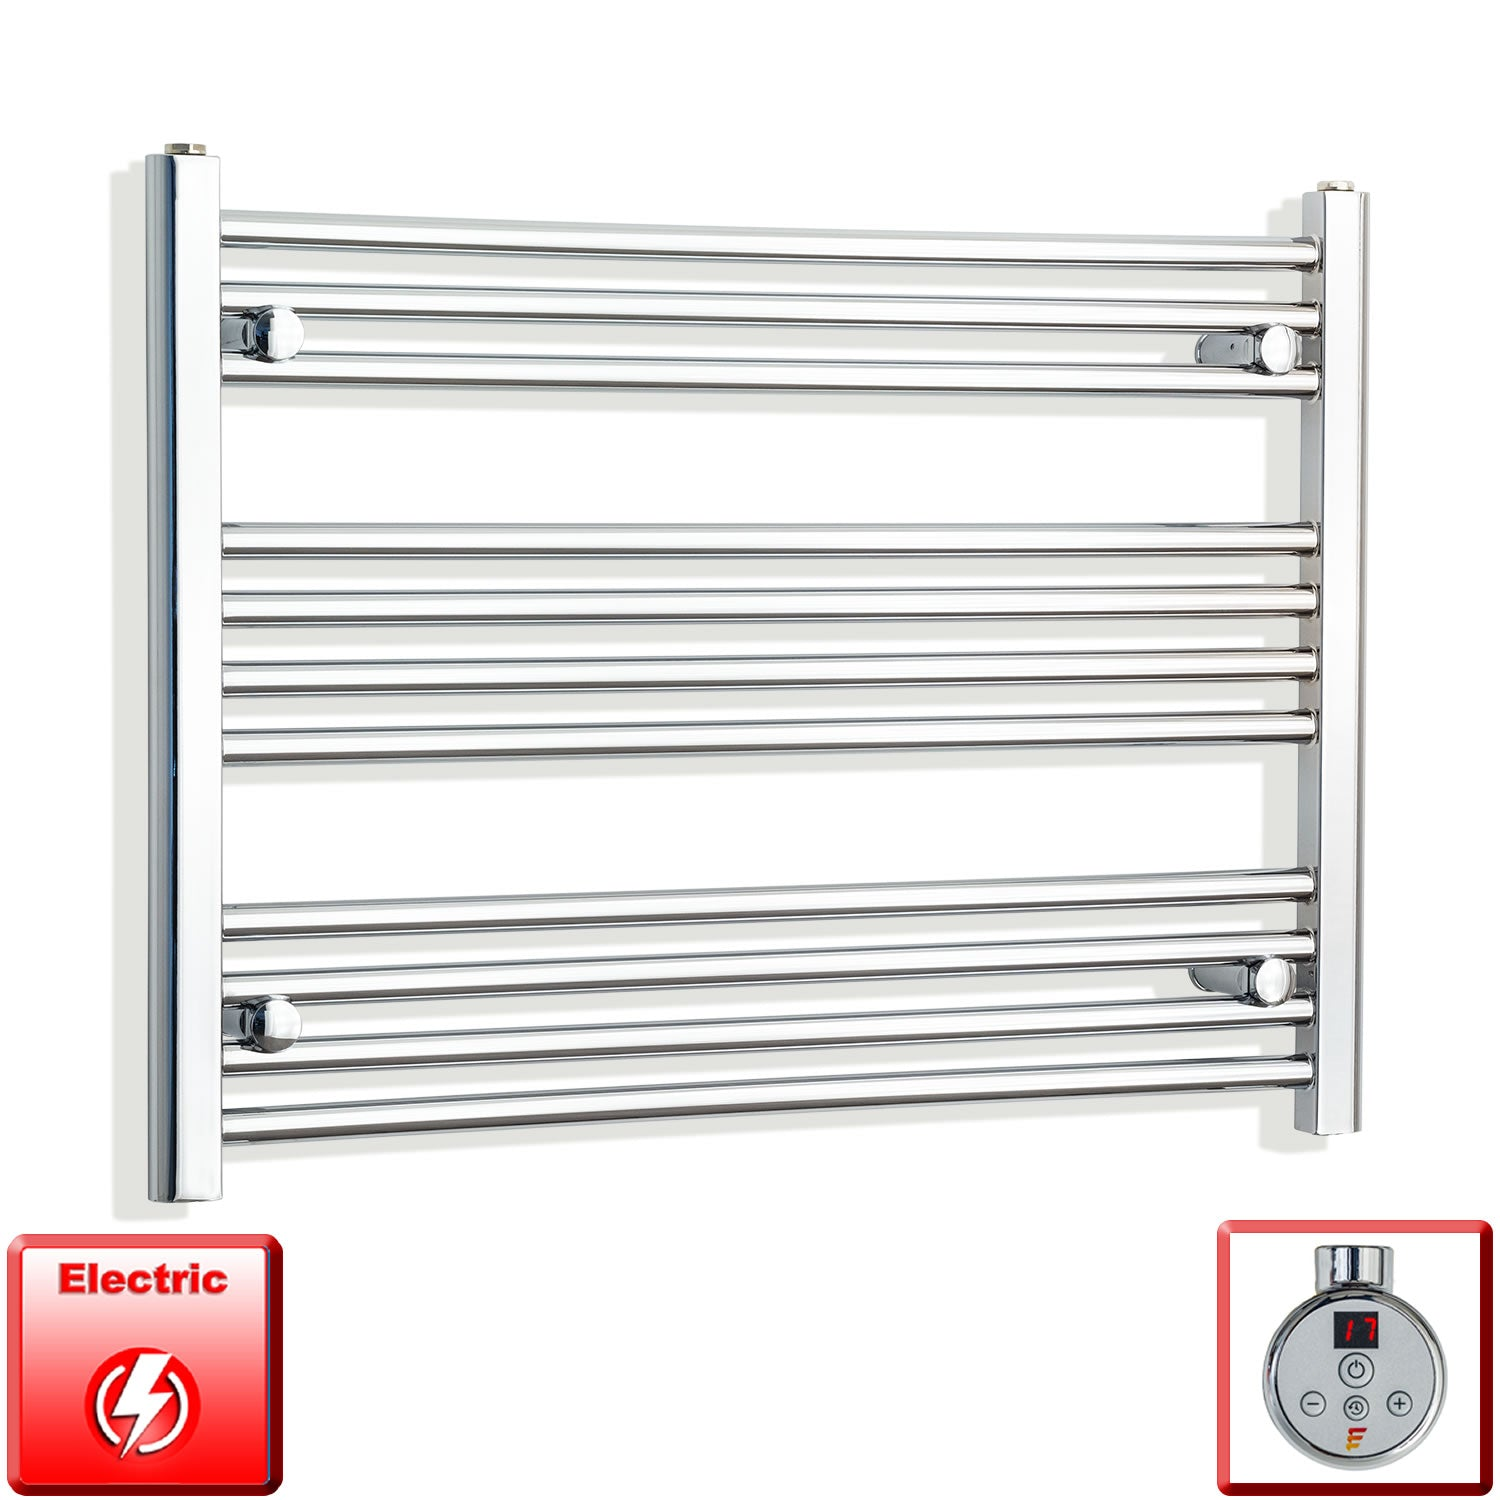 950mm Wide 600mm High Flat Chrome Pre-Filled Electric Heated Towel Rail Radiator HTR